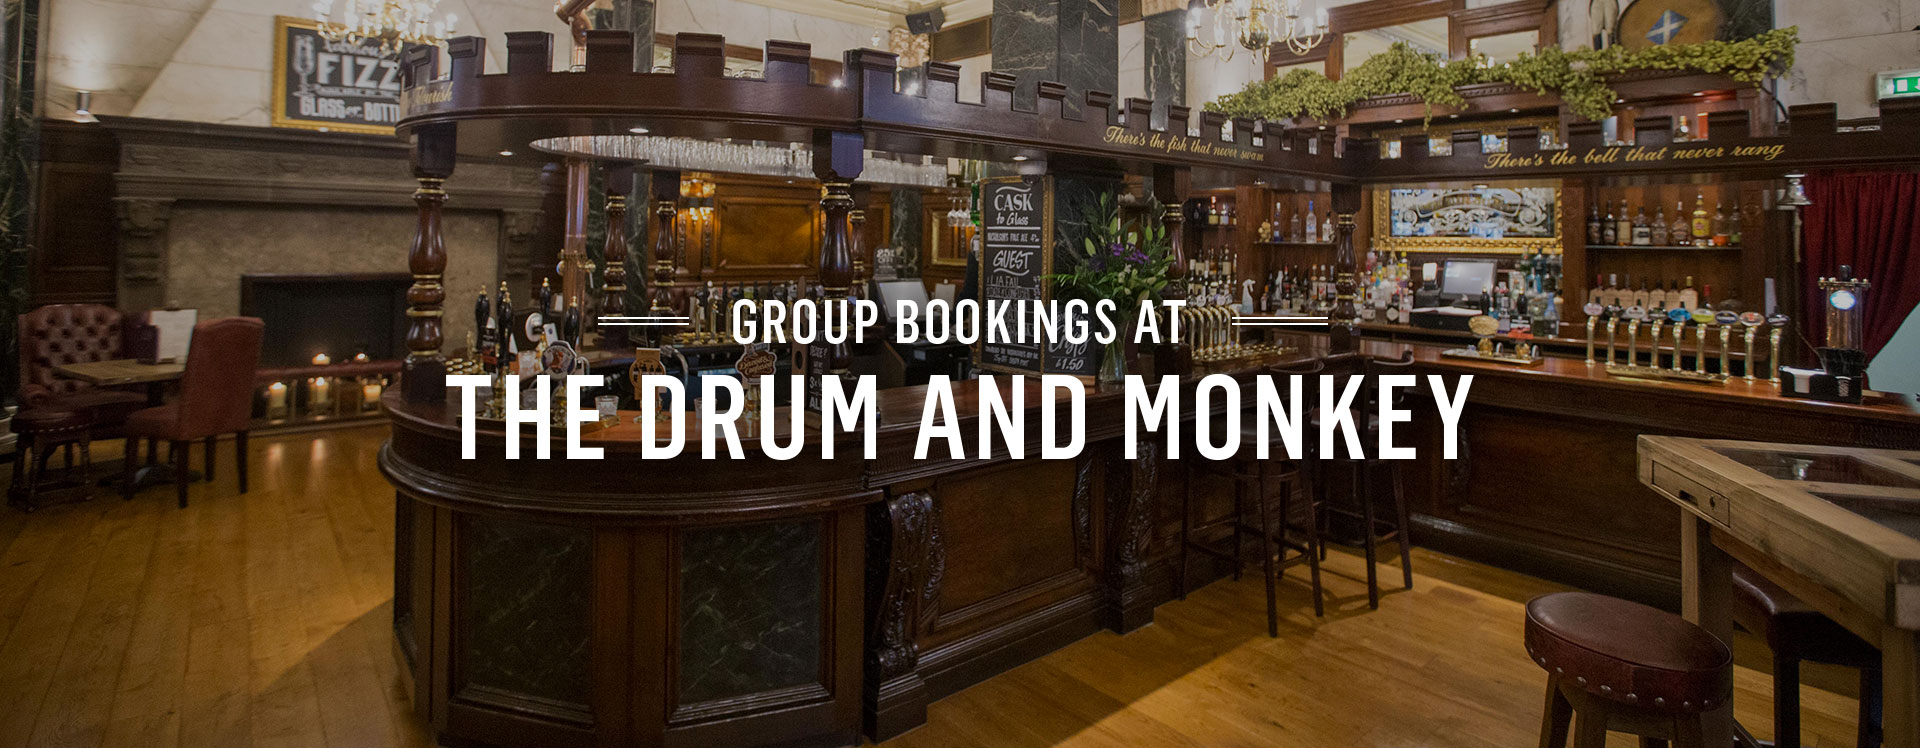 Group Bookings at The Drum and Monkey